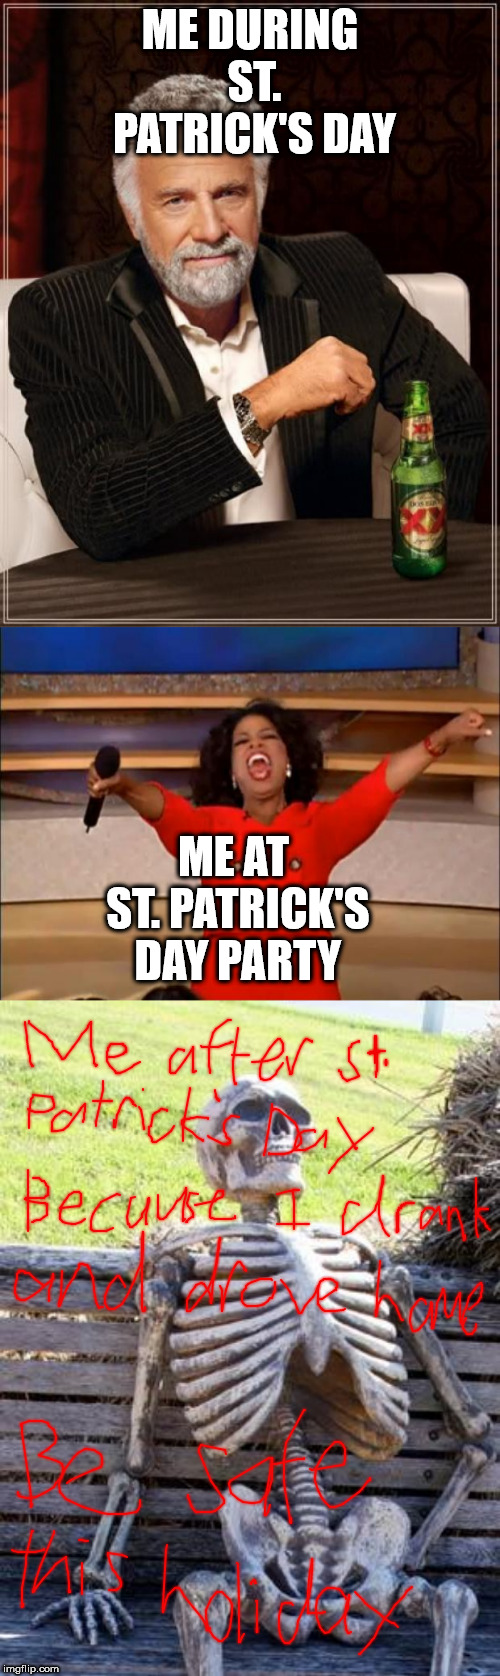 ME DURING ST. PATRICK'S DAY ME AT ST. PATRICK'S DAY PARTY | image tagged in memes,the most interesting man in the world,waiting skeleton,oprah you get a | made w/ Imgflip meme maker